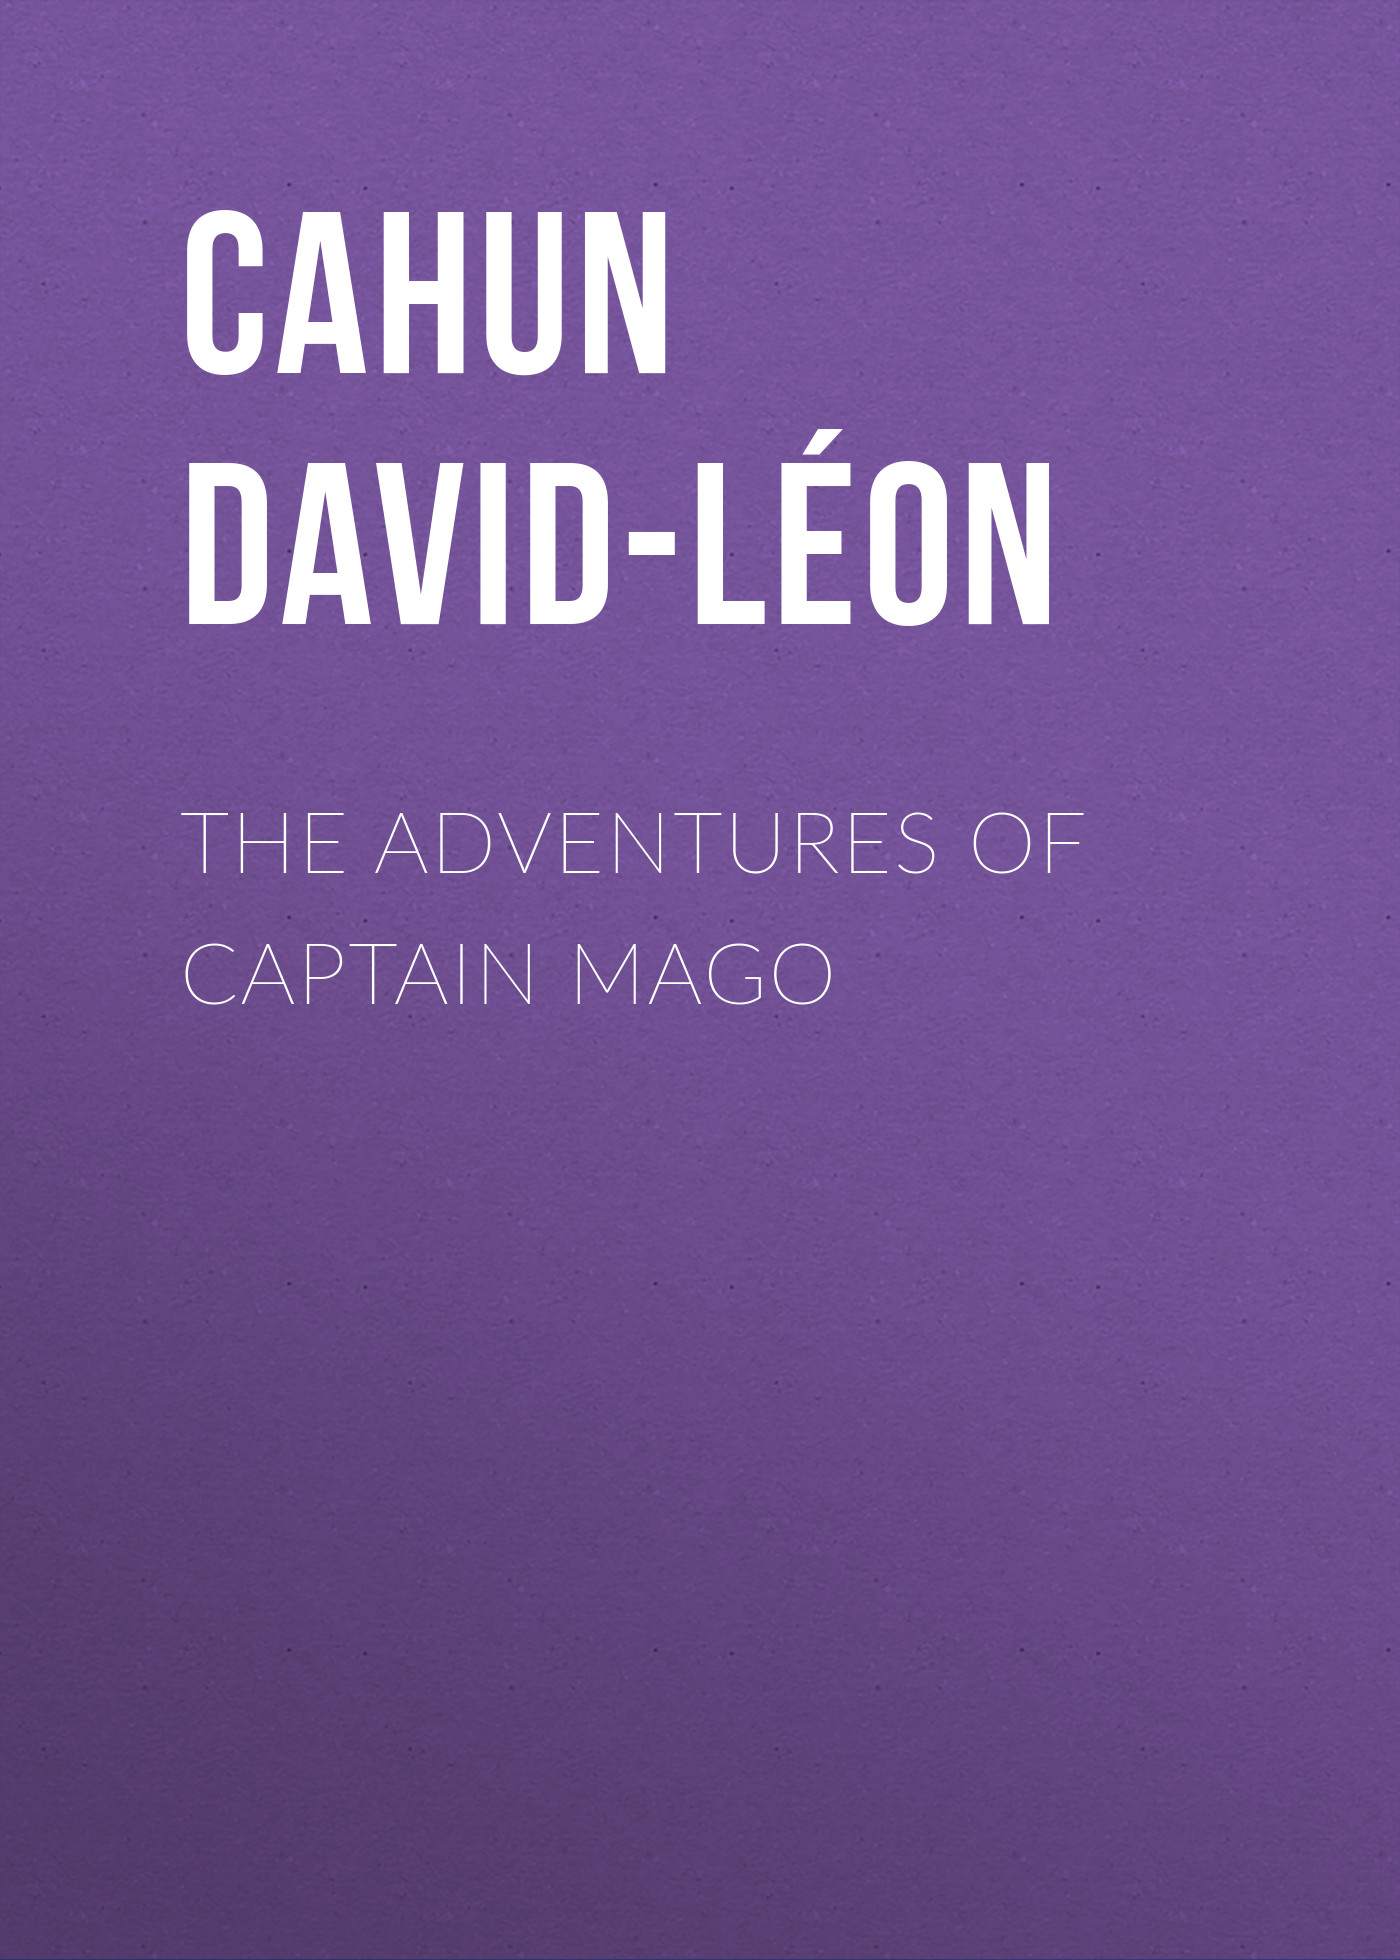 the adventures of captain mago